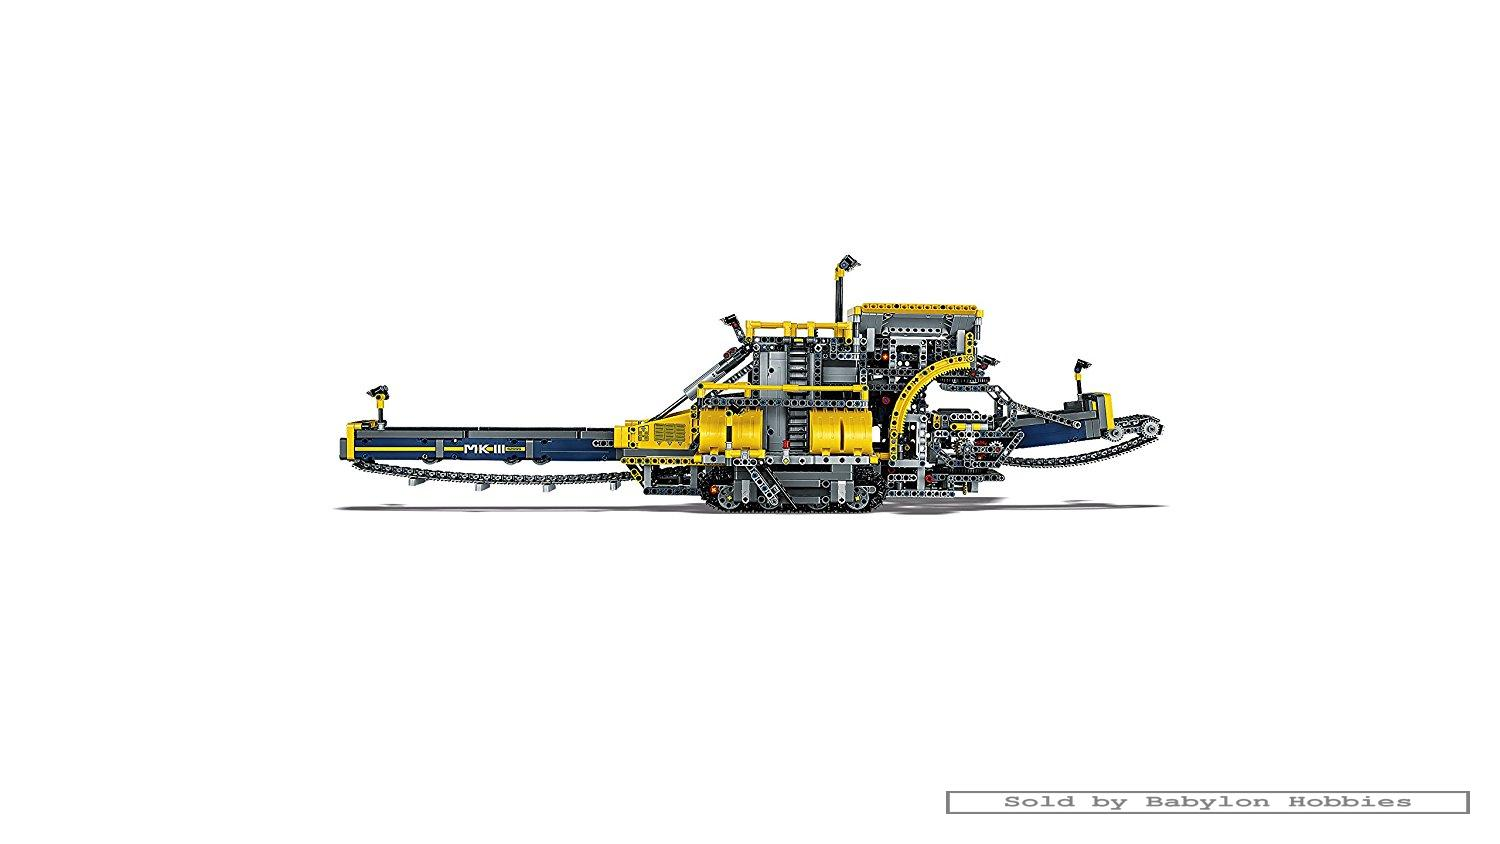 lego technic bucket wheel excavator by lego 42055 ebay. Black Bedroom Furniture Sets. Home Design Ideas